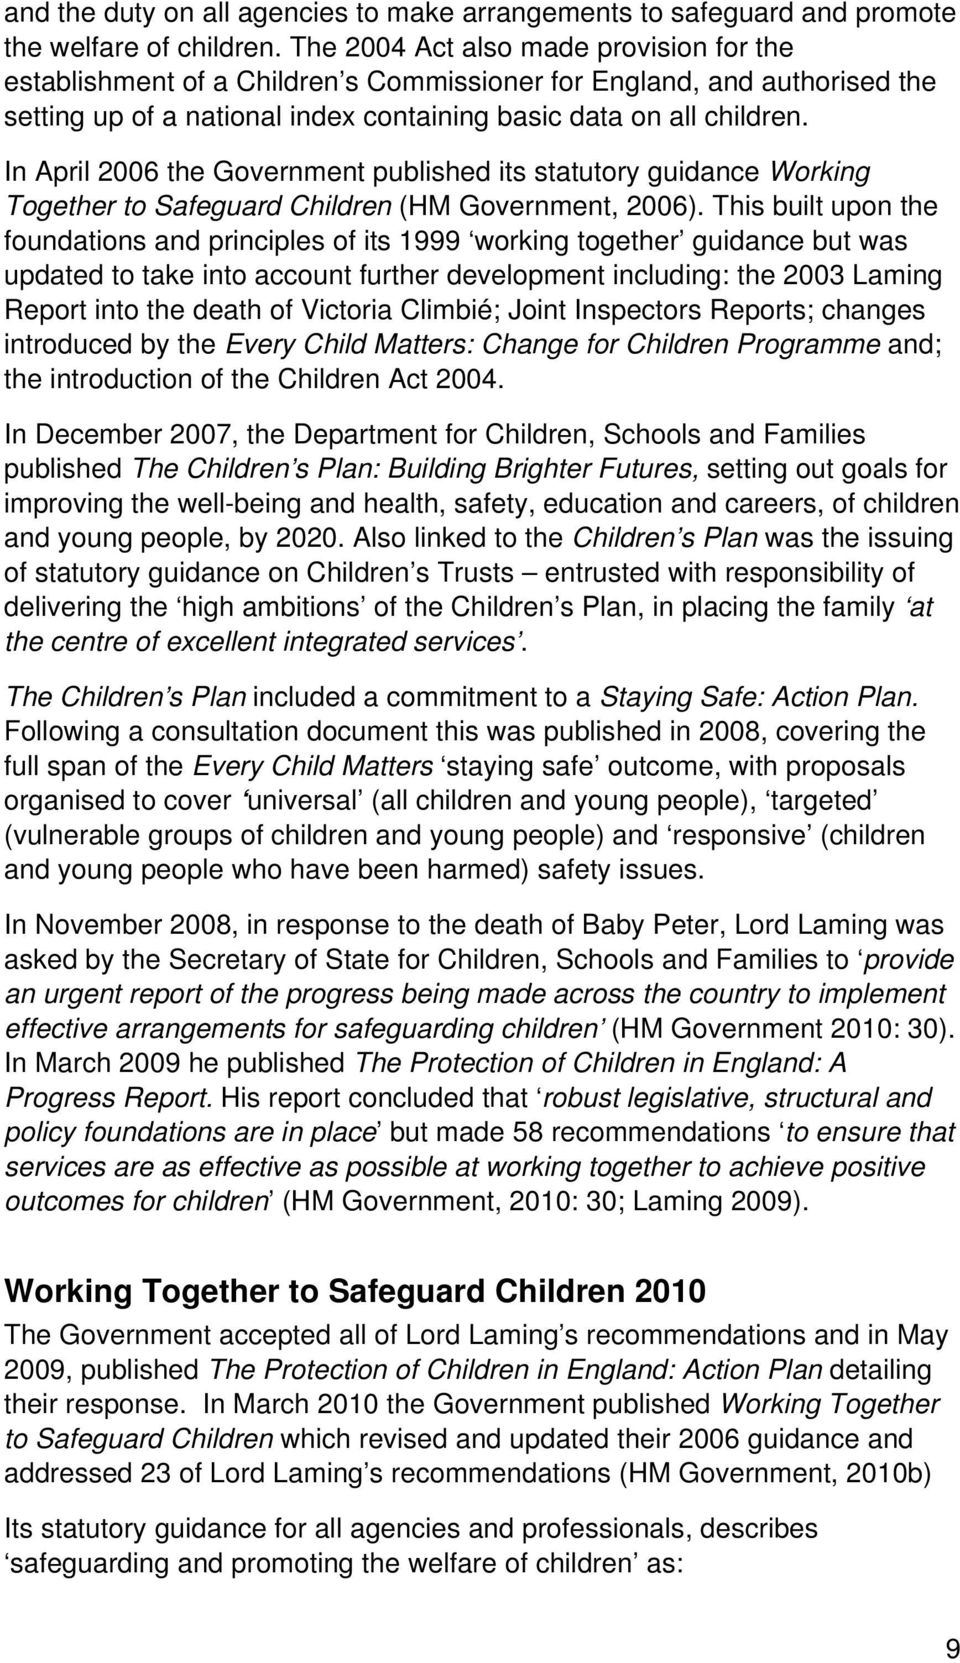 In April 2006 the Government published its statutory guidance Working Together to Safeguard Children (HM Government, 2006).